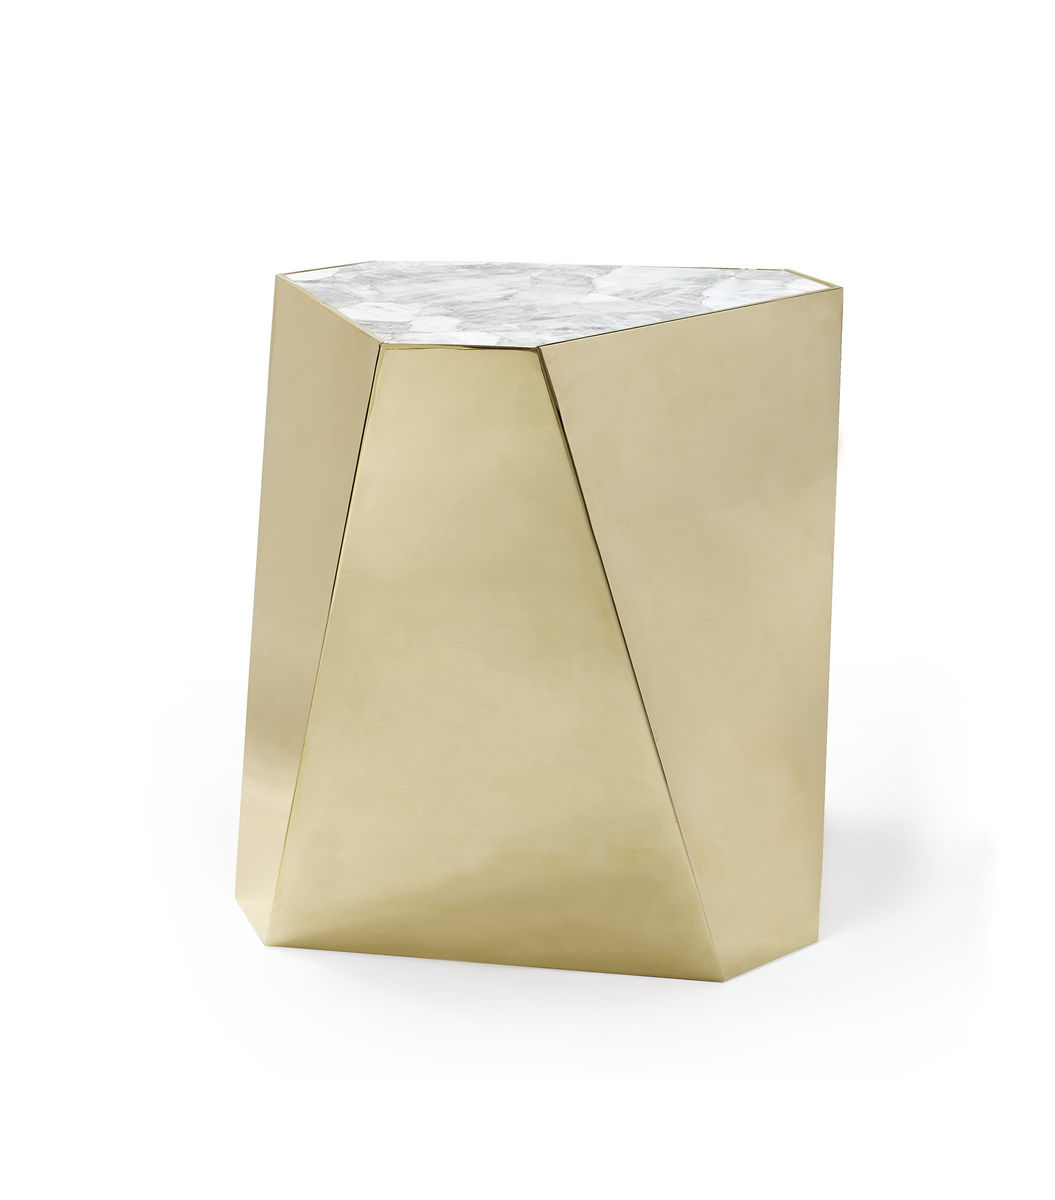 Contempo Side table